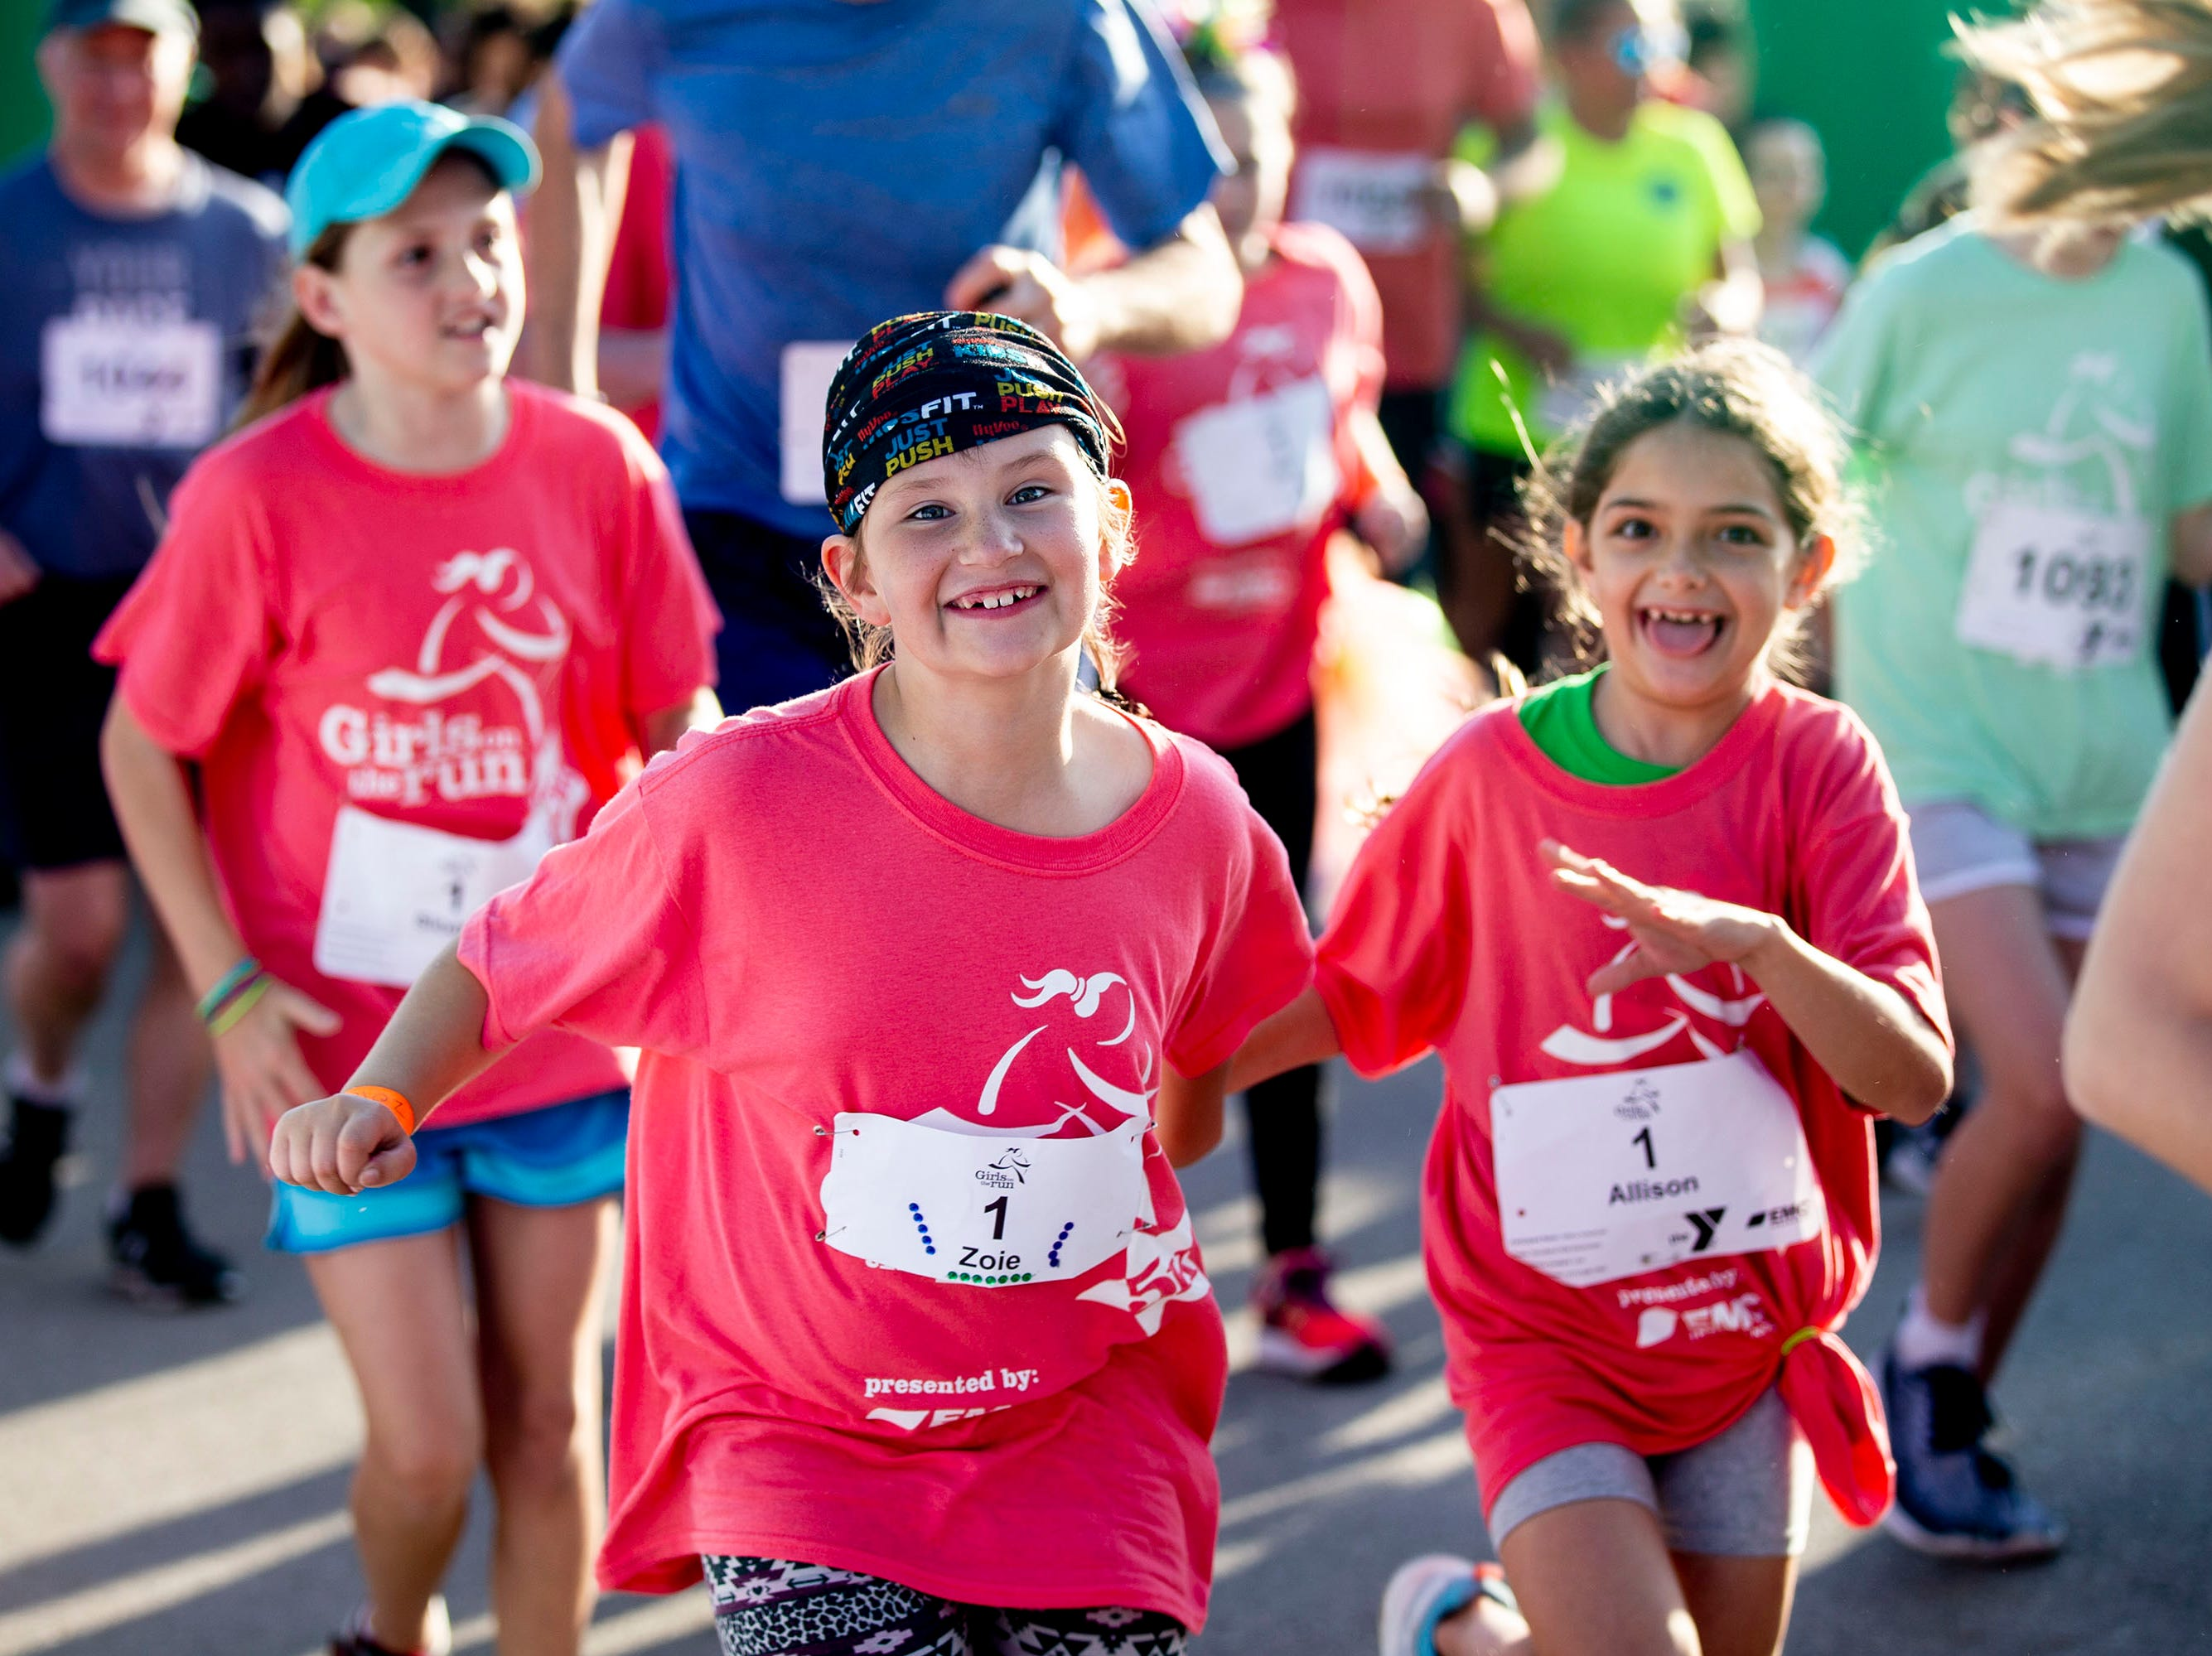 Runners take off from the start of the Girls on the Run 5K on Tuesday, May 14, 2019, in Water Works Park in Des Moines. The 5K is a celebration for the 800 girls in Central Iowa, marking the end of the spring season of Girls on the Run.